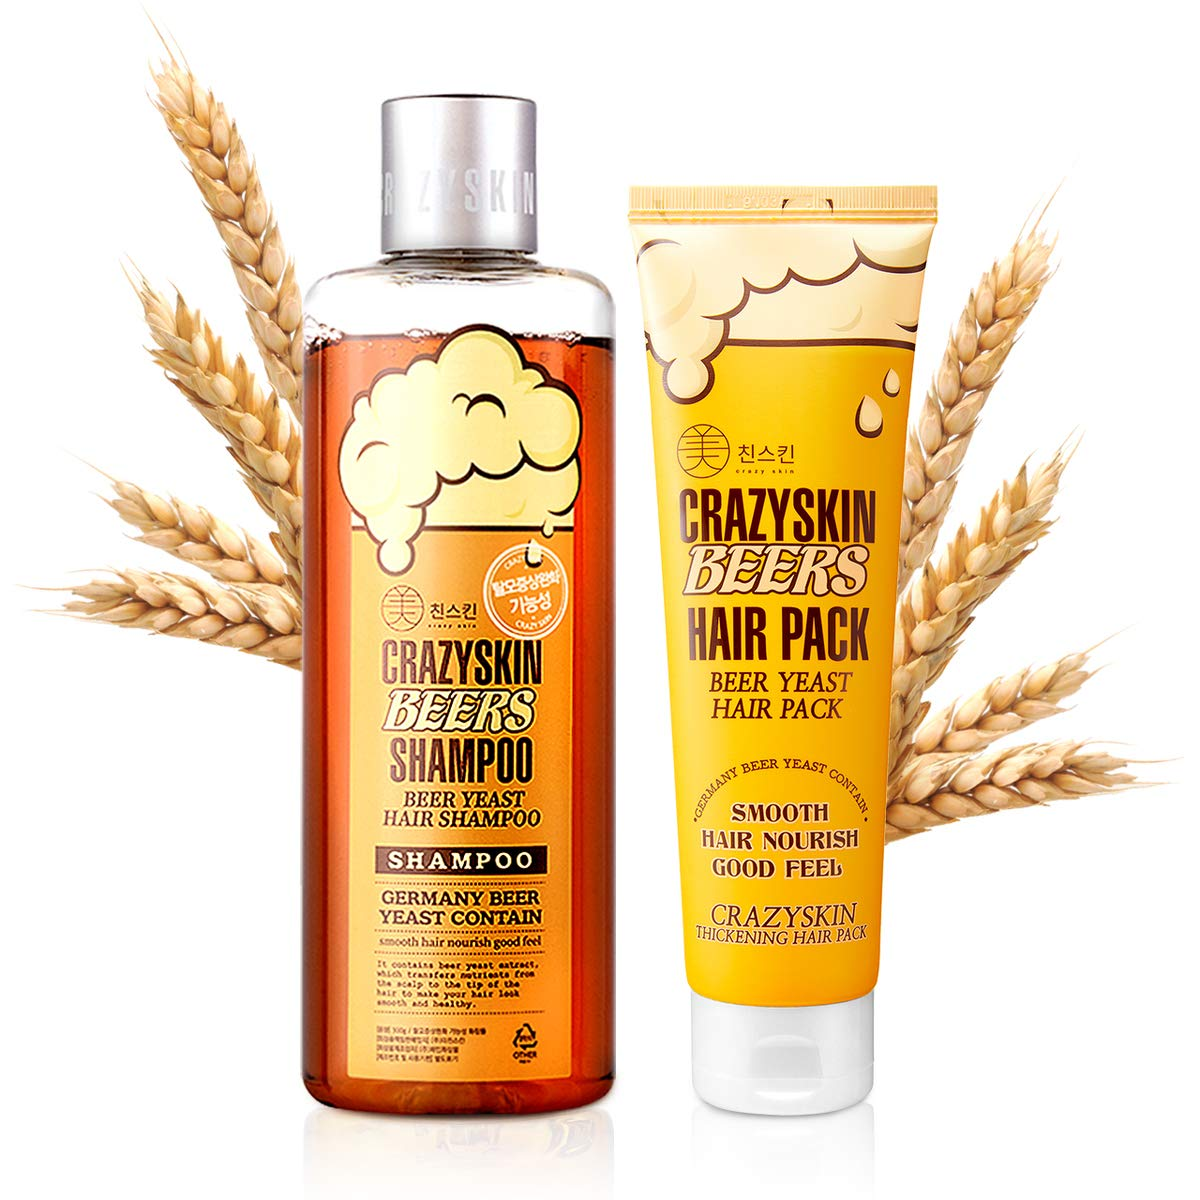 Amazon.com : CRAZY SKIN Beer Shampoo & Hair Pack SET - pH 5.5 German Beer Yeast Hair Care Set, Rich in Biotin, Anti Hair Loss : Beauty